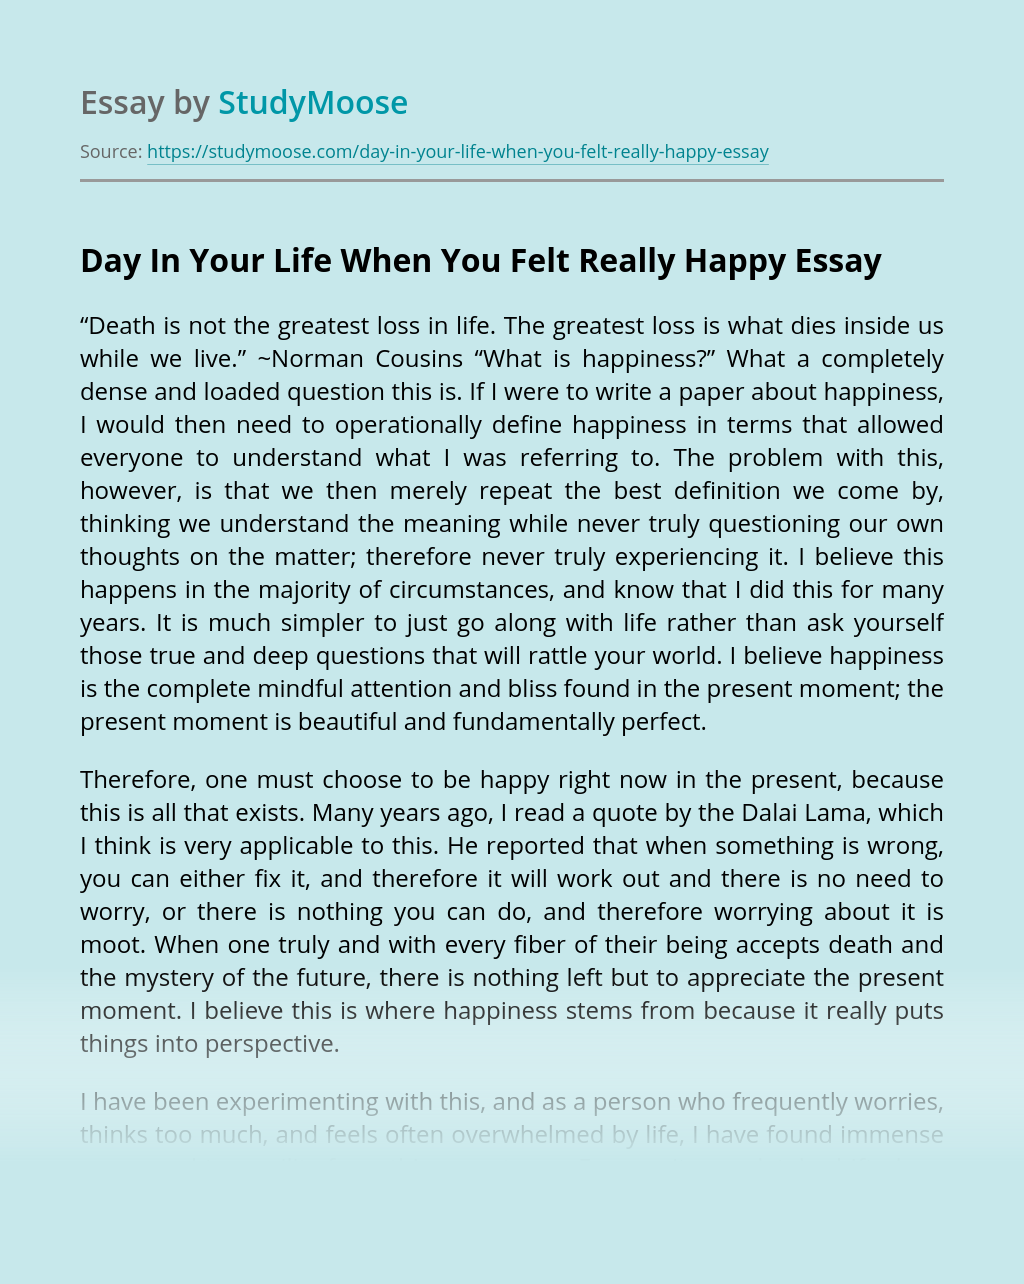 Day In Your Life When You Felt Really Happy